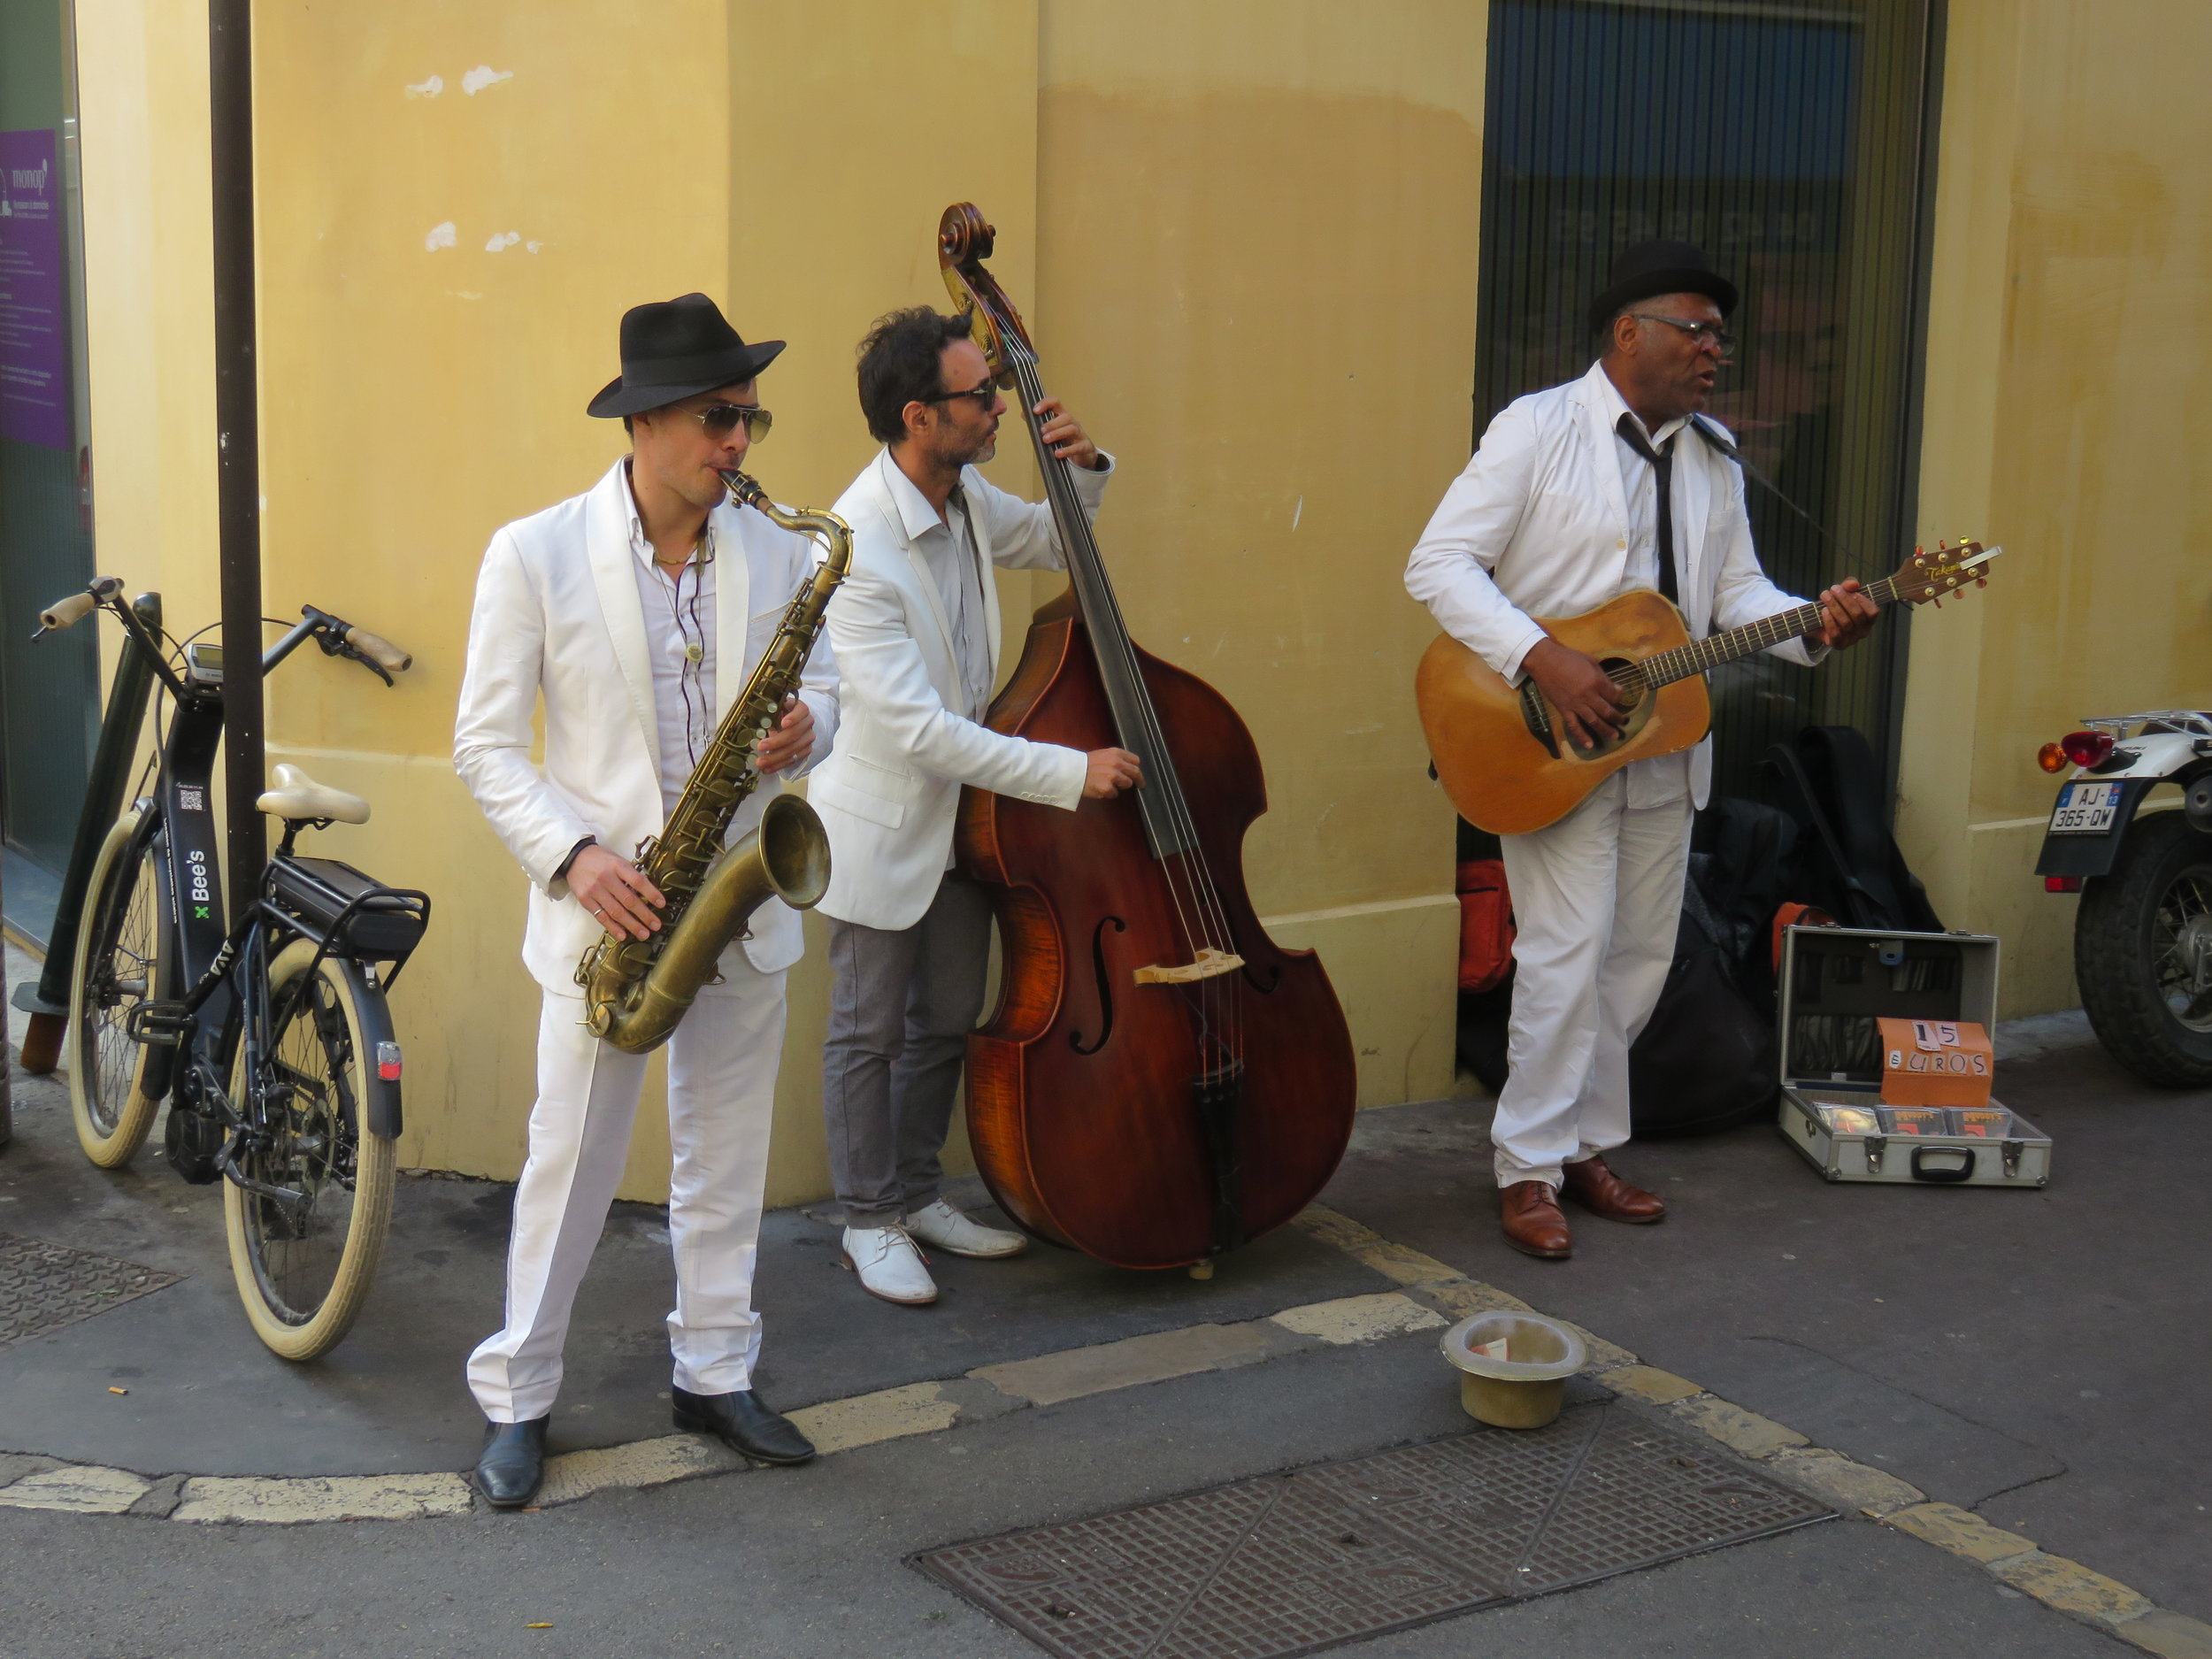 Aix street musicians. They were doing some amazing French influenced blues/jazz so we bought their CD. Unfortunately, it ended up being just studied versions of the American originals.